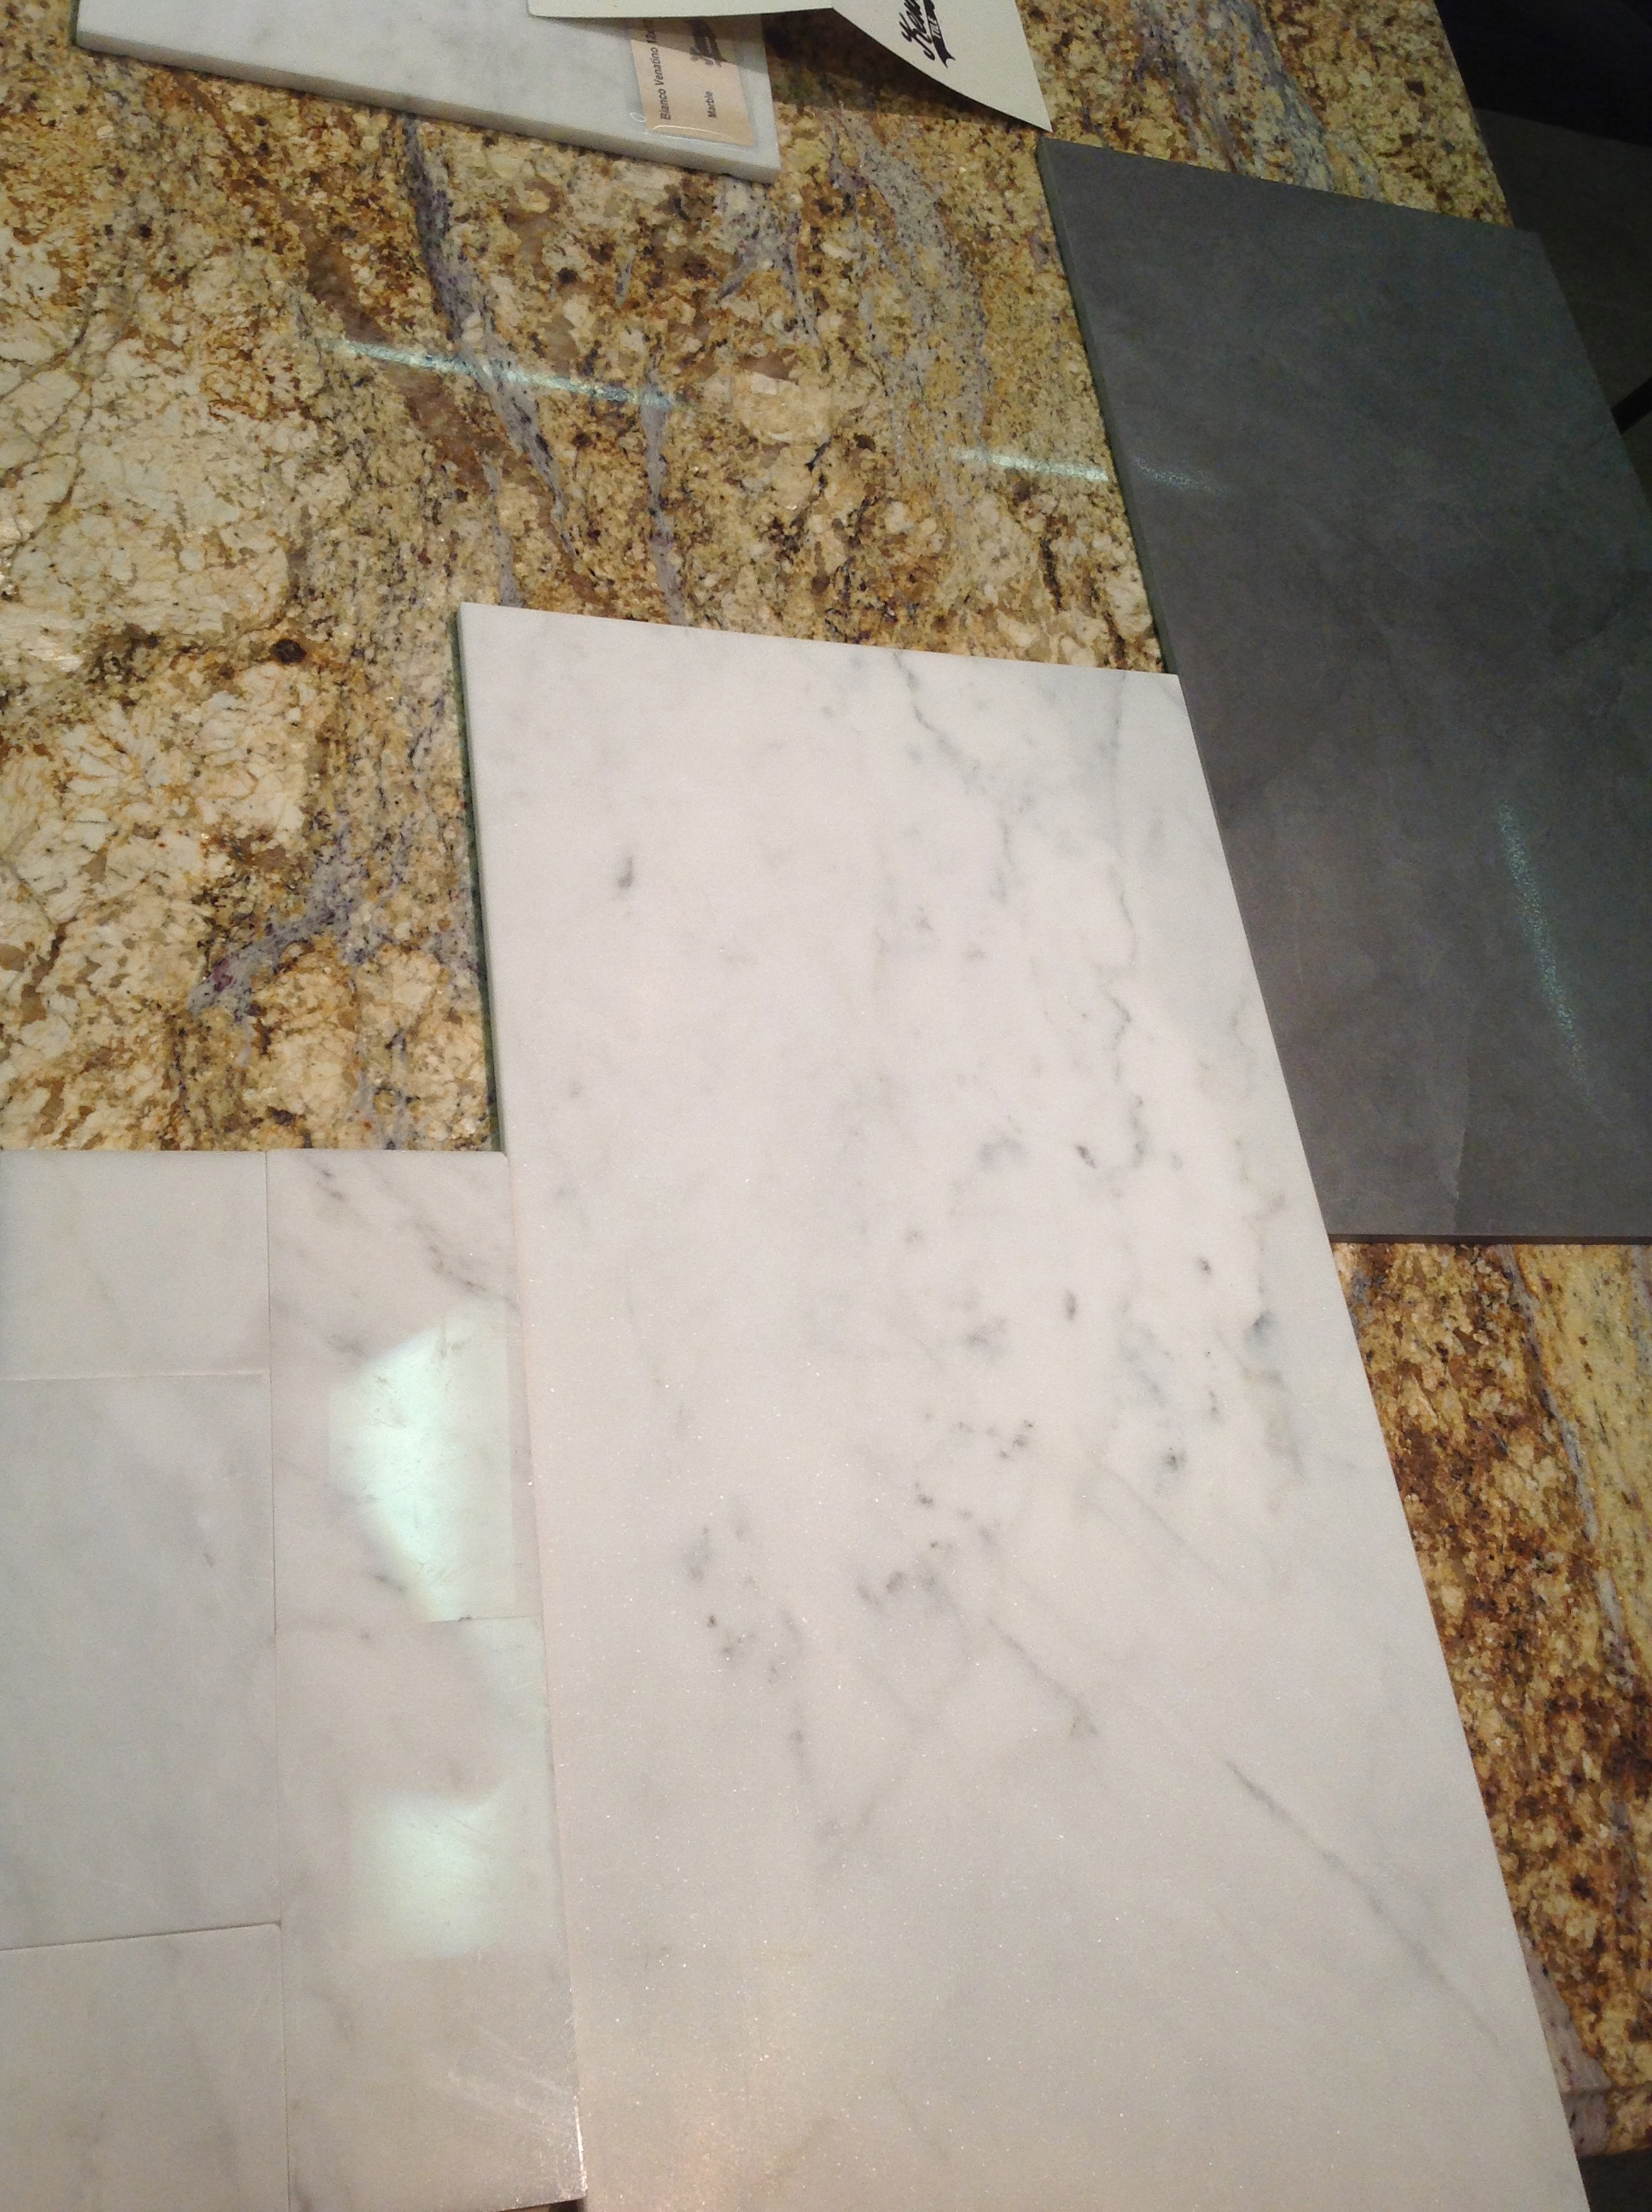 Master bath selections. A little uglier by the granite backdrop that doesn't go at all.